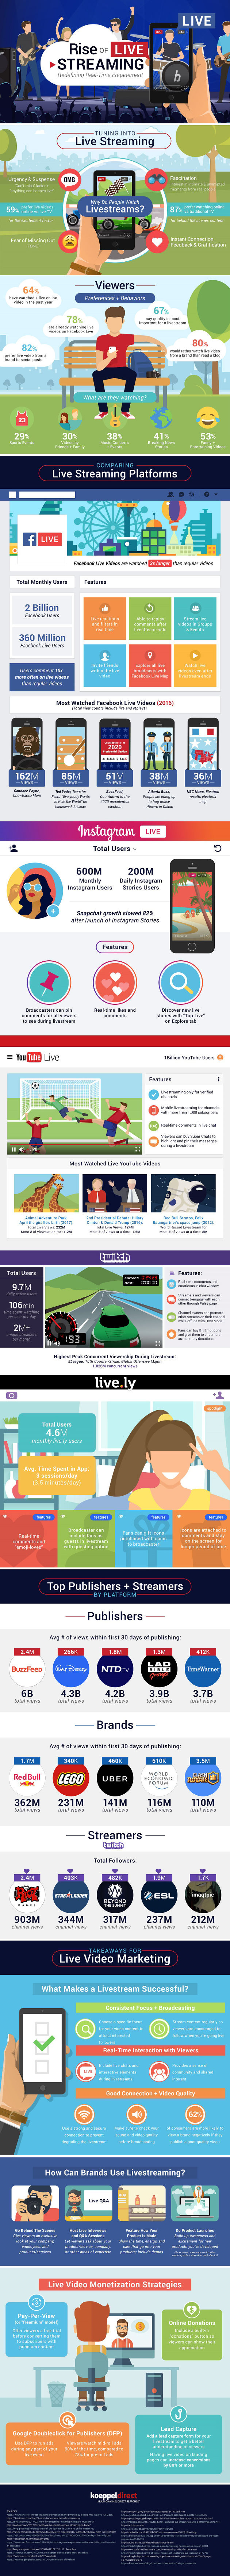 The Rise of Livestreaming Today [Infographic]